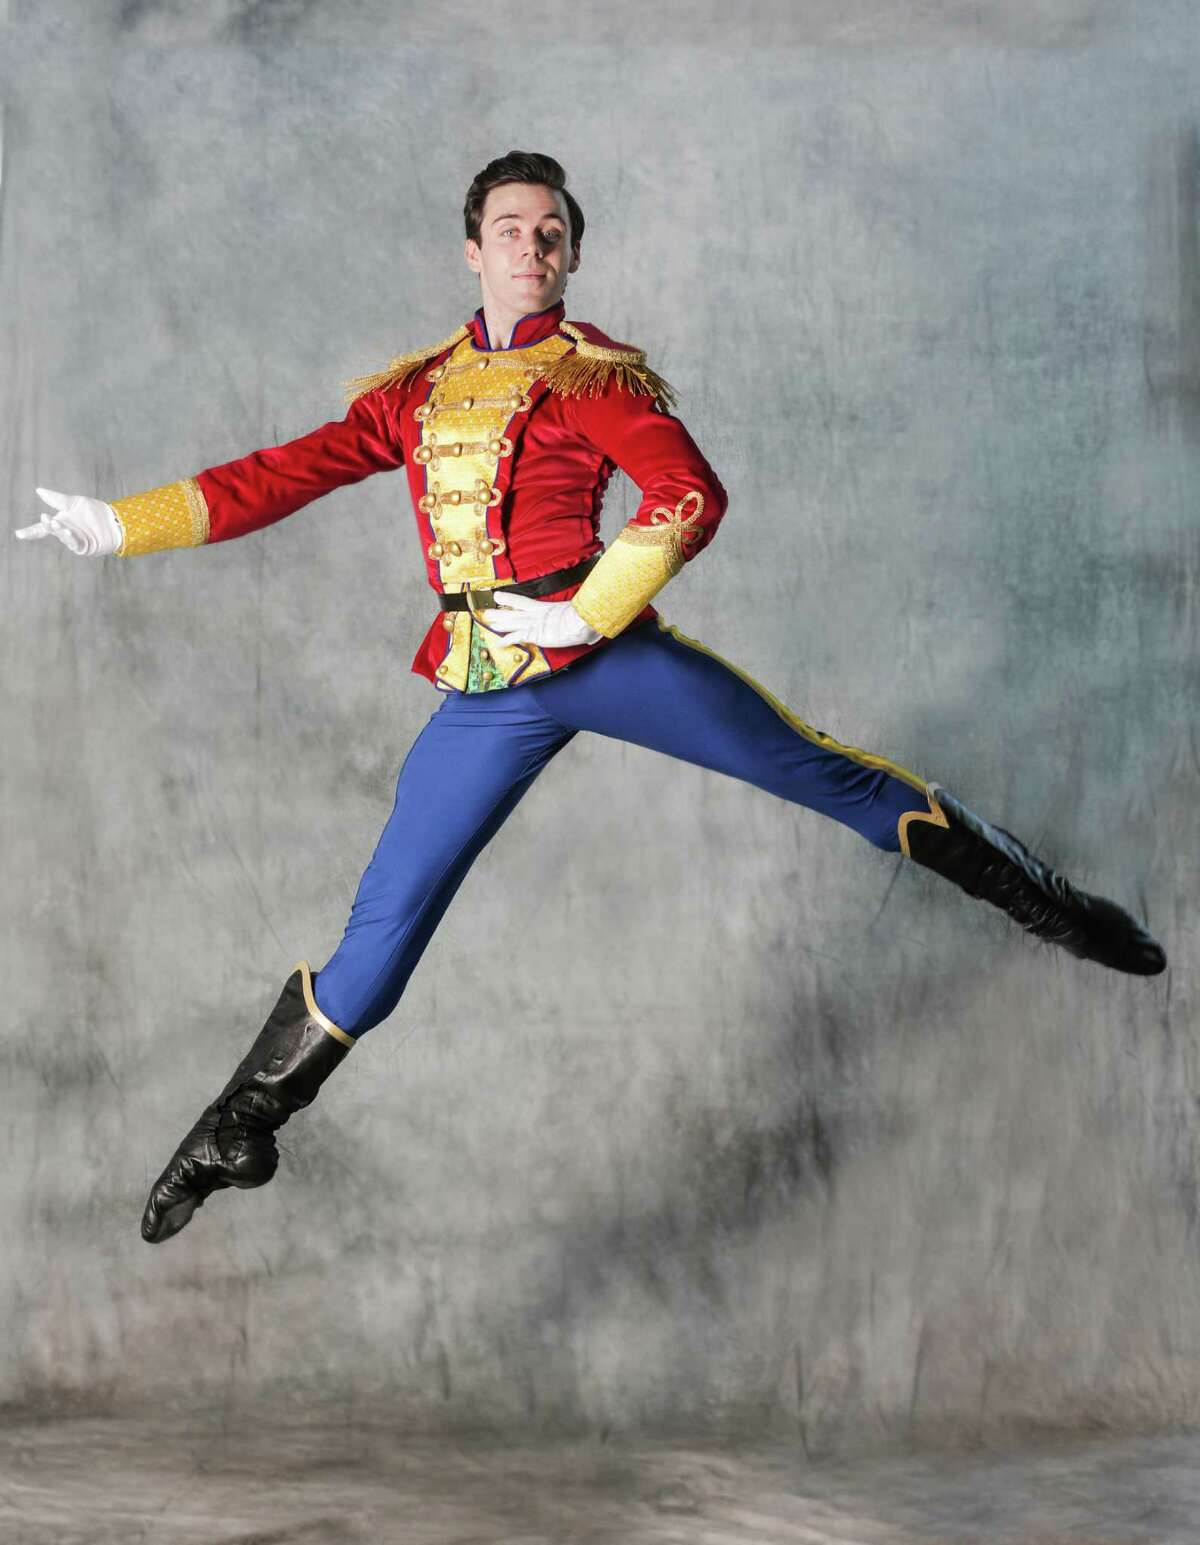 Houston Ballet principal Connor Walsh wears the Nutcracker costume for the company's 2016 production of the Nutcracker on Monday, Oct. 31, 2016, in Houston.